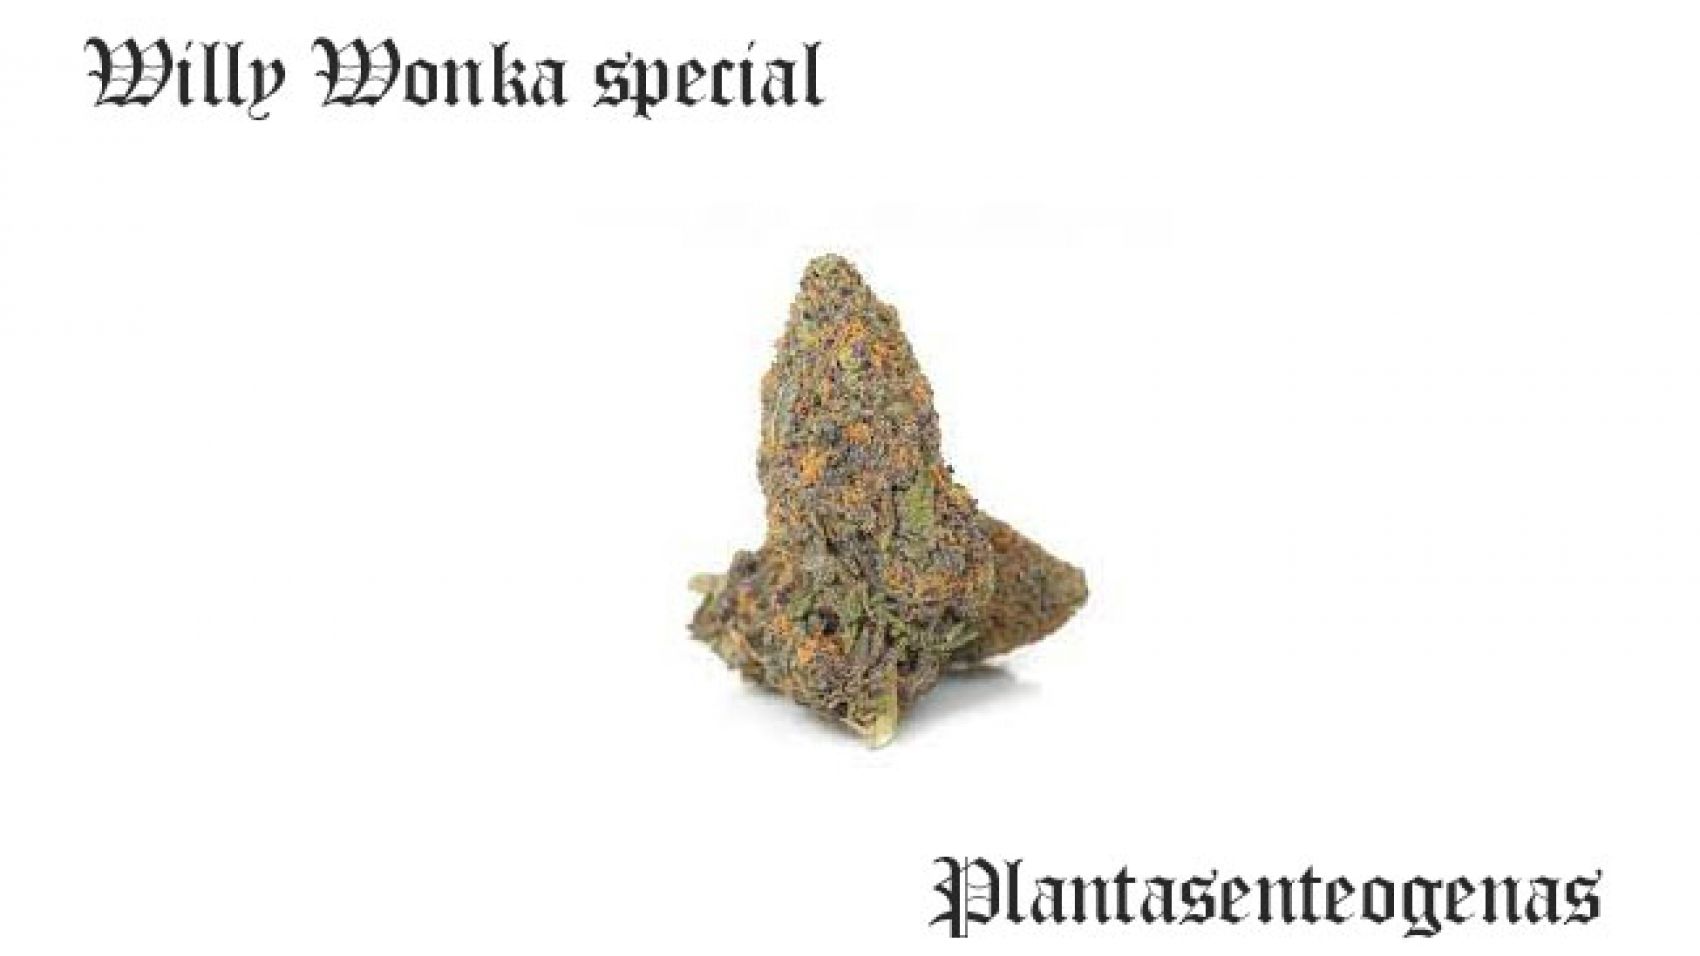 Willy Wonka special